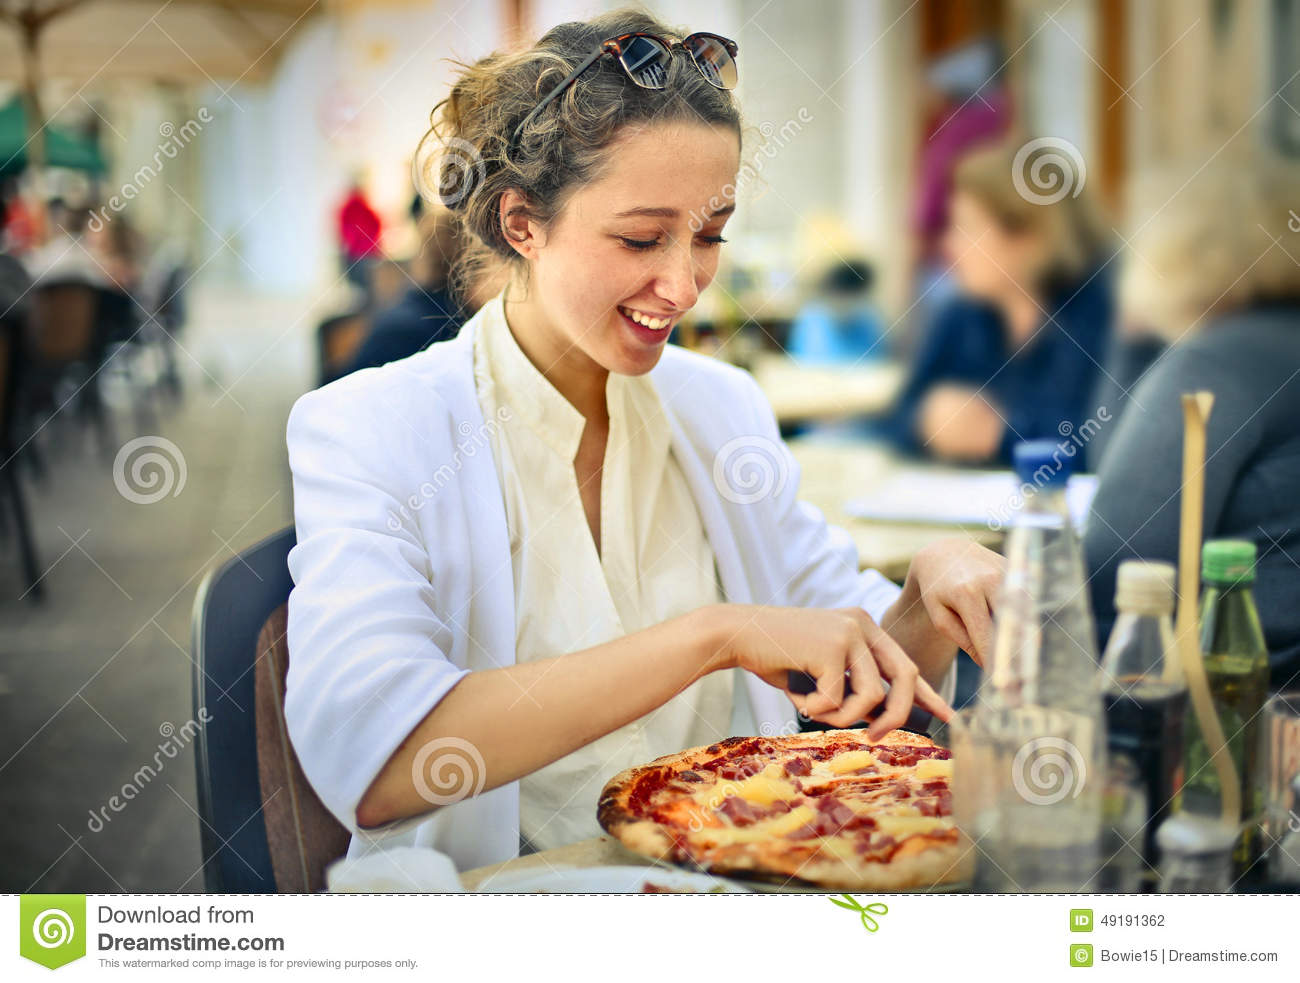 A tasty pizza